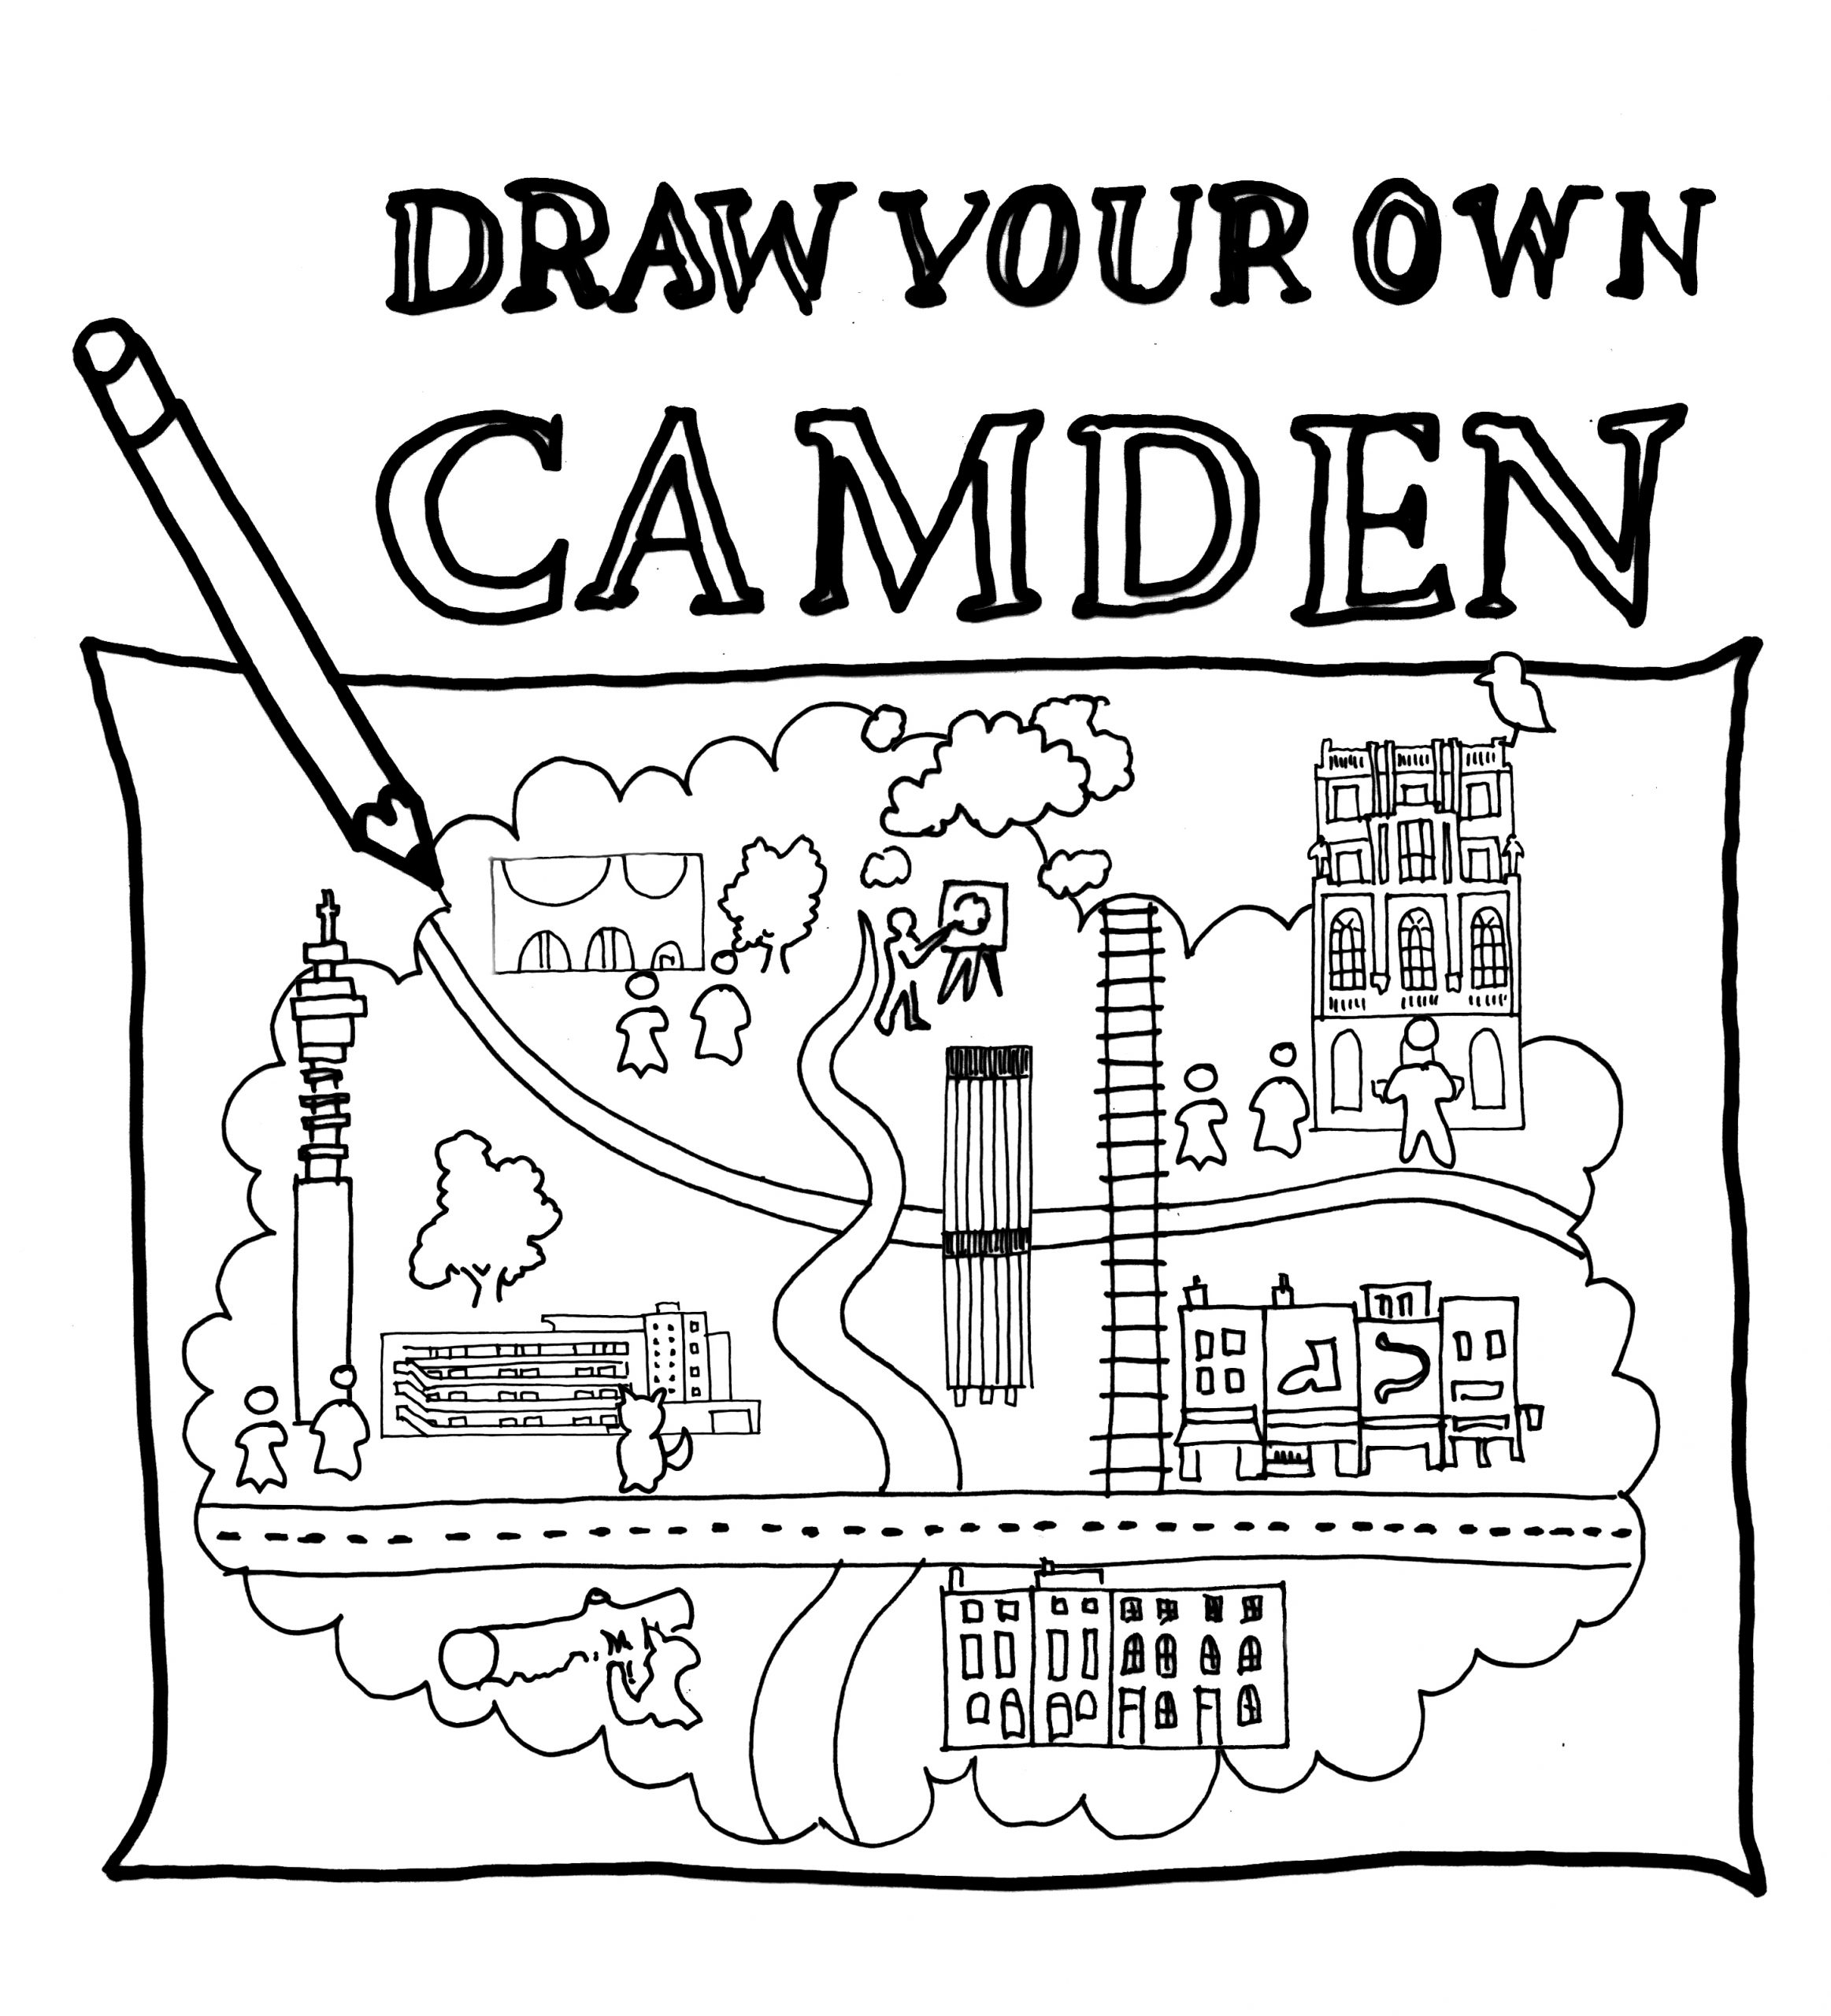 Draw your Own Camden